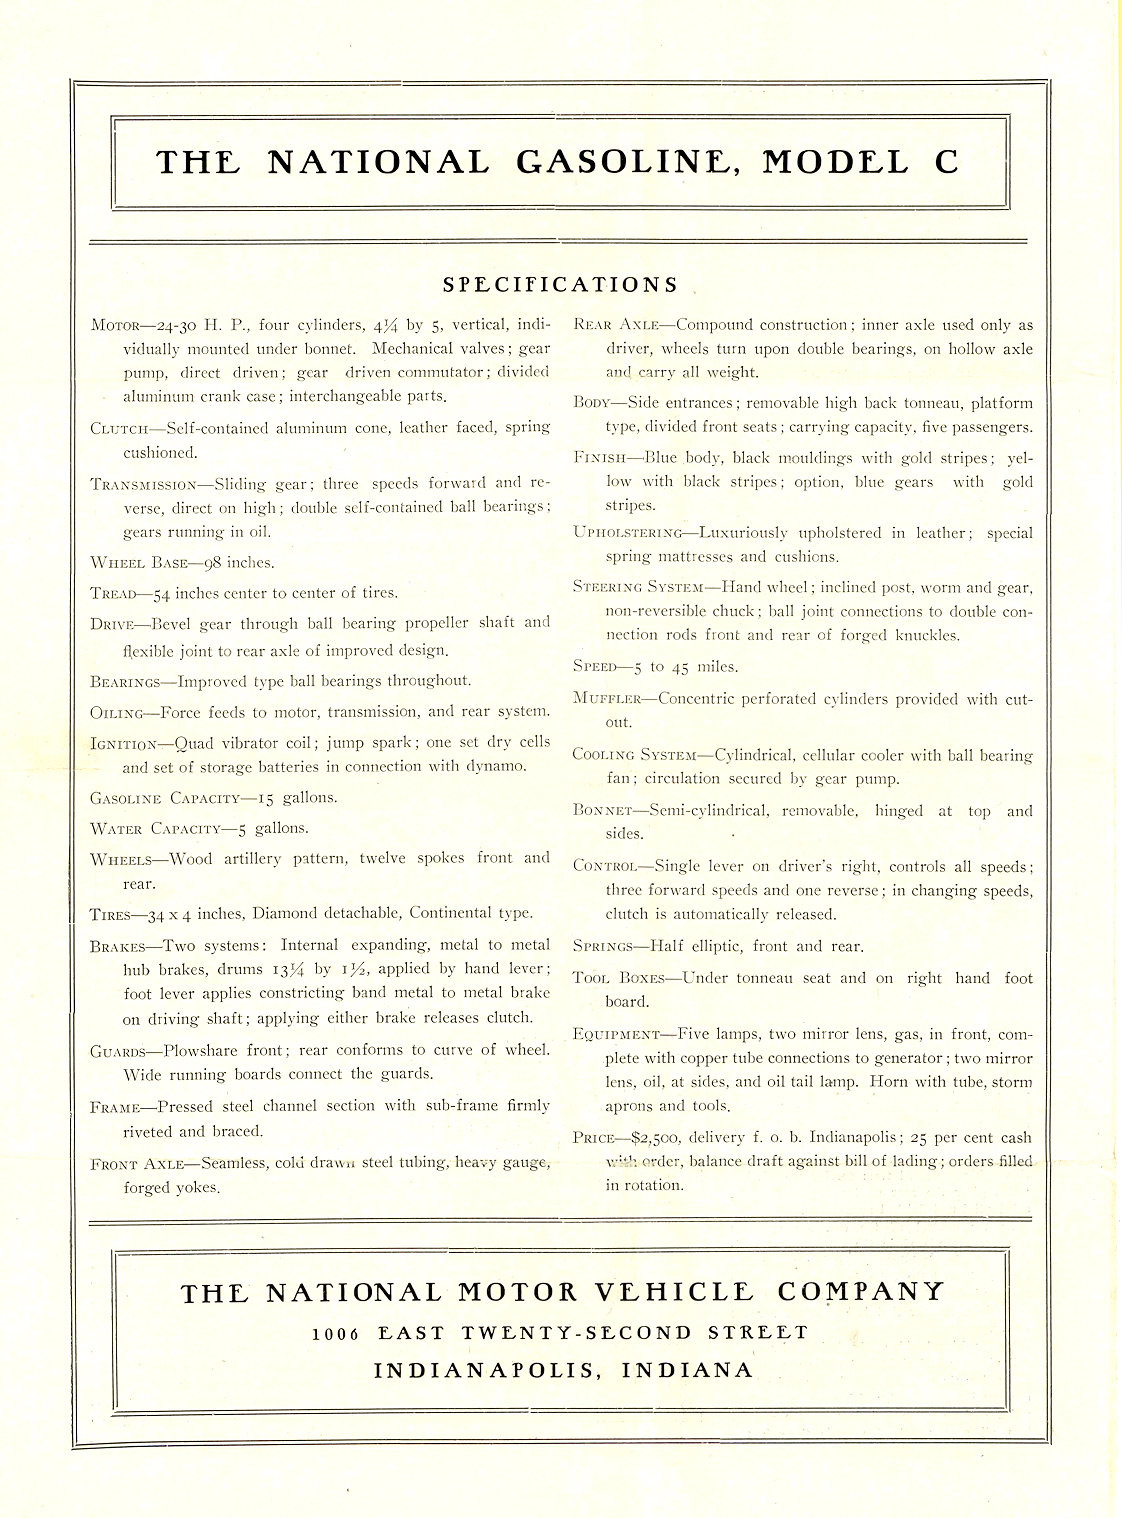 1905 NATIONAL Model C ONE OF THE NEW HOOSIER MODELS REPRINTED FROM MOTOR AGE, OF CHICAGO NATIONAL MOTOR VEHICLE COMPANY Indianapolis, IND 9.25″x13″ page 4 of 4